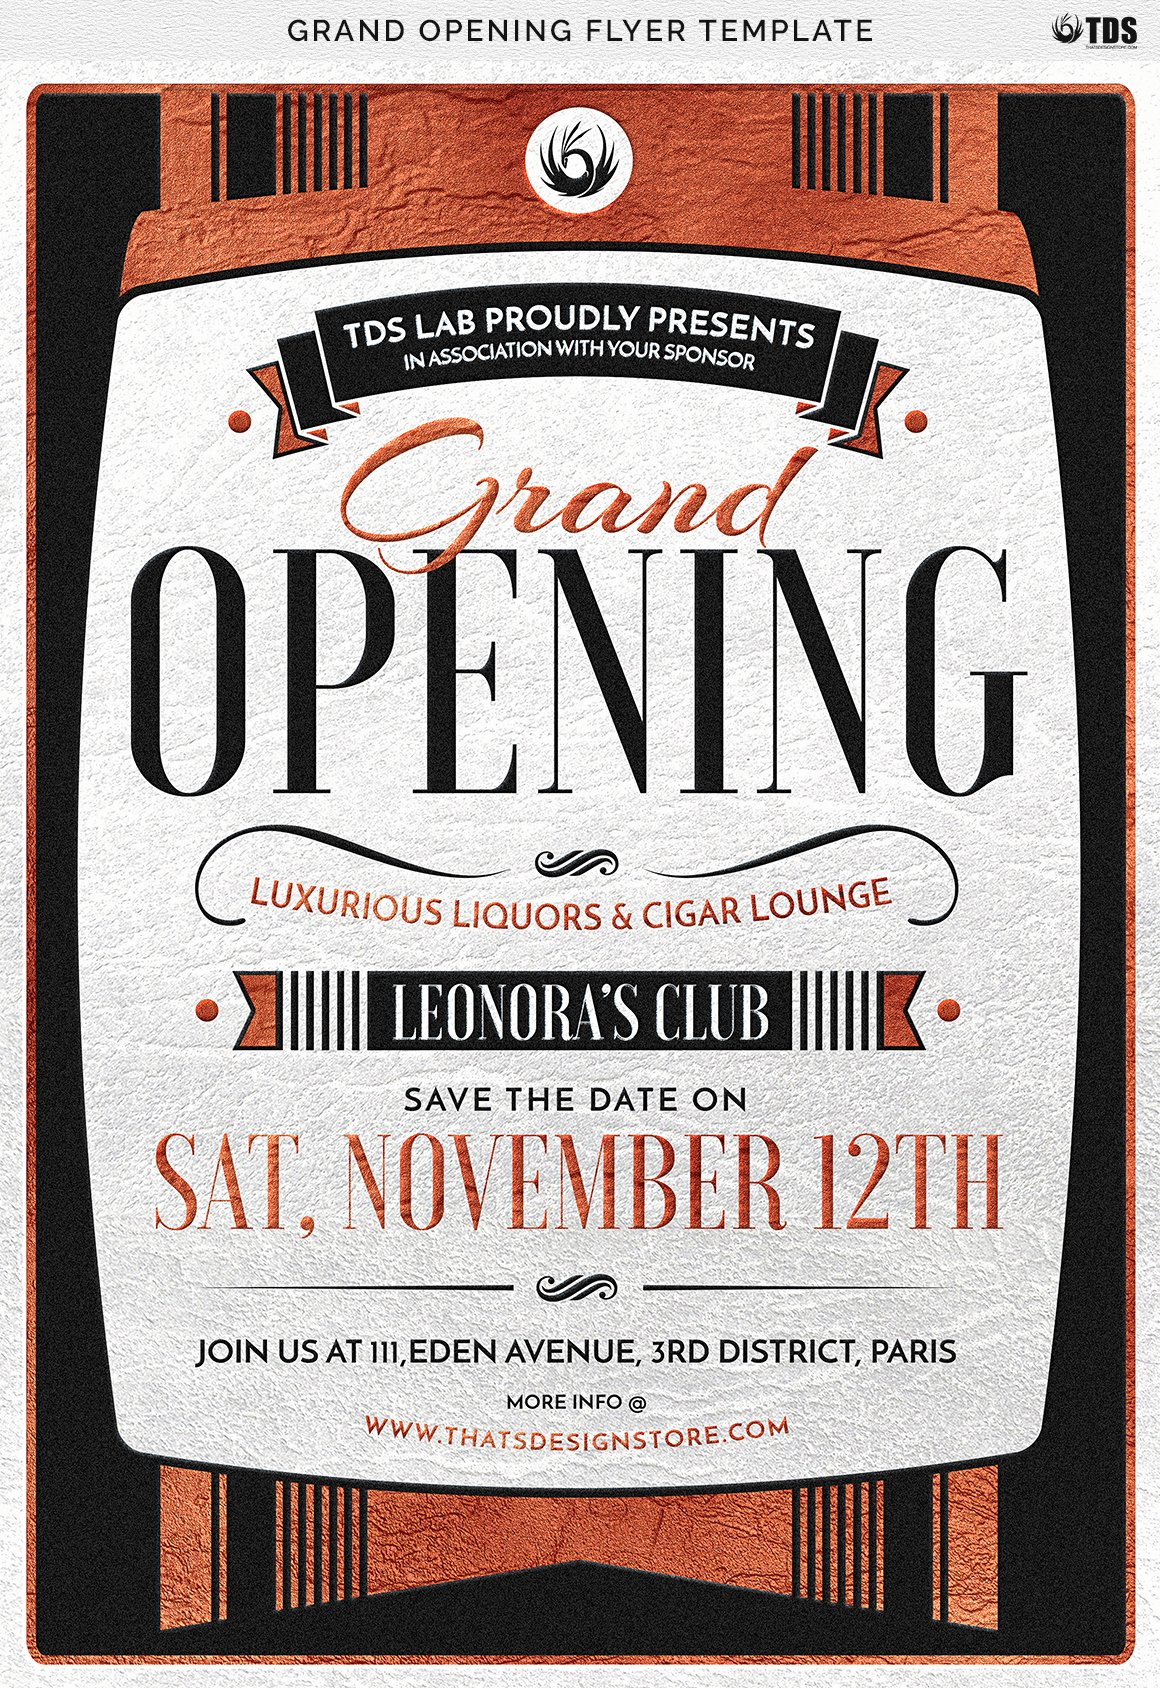 Grand Opening Flyer Template Free Beautiful Grand Opening Flyer Template